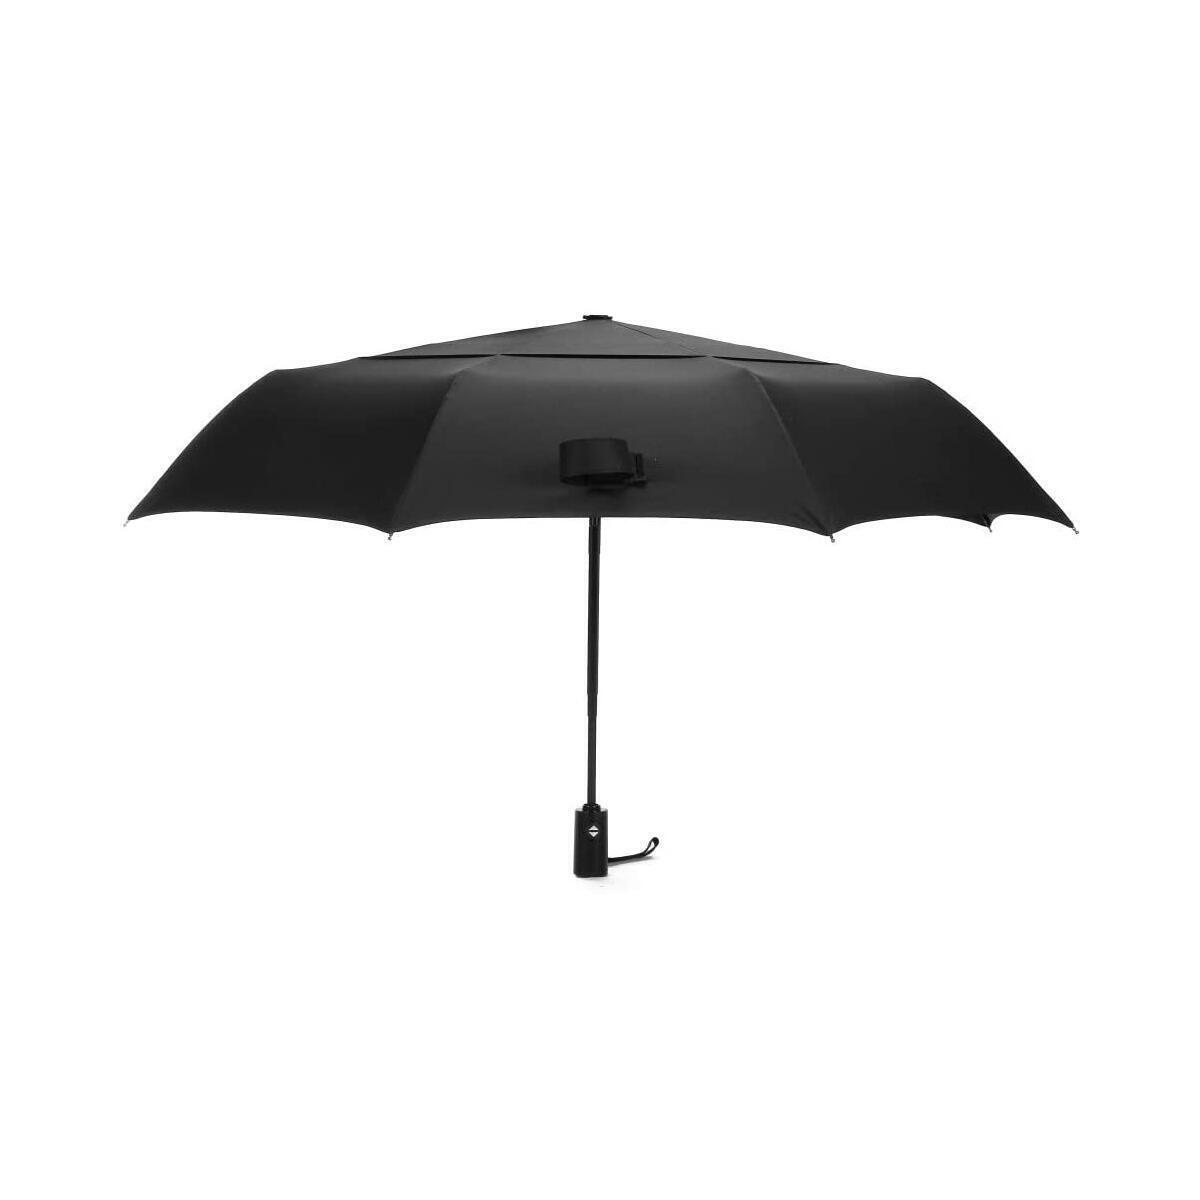 Premium Quality Double Vented Windproof Automatic Travel Umbrellas, User-Friendly Portable, Lightweight Automatic Travel Umbrella